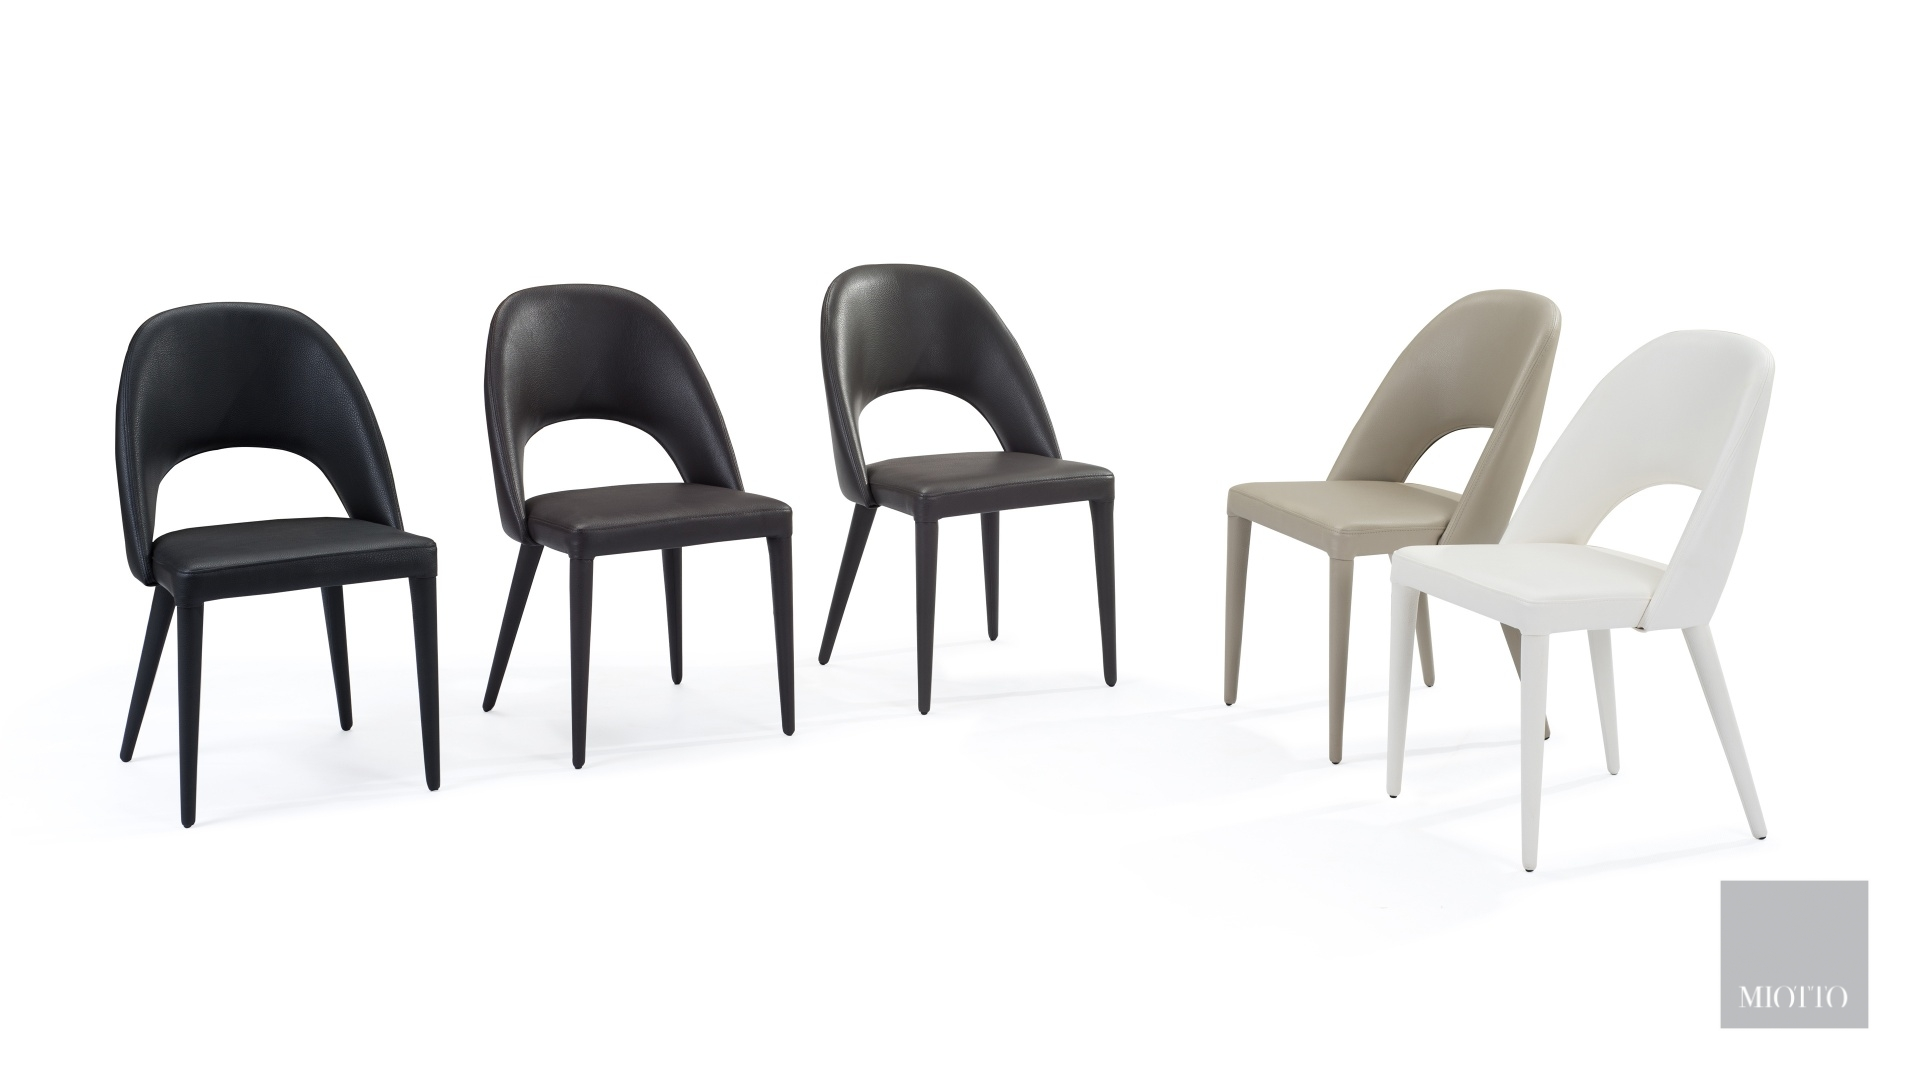 miotto_Salgari dining chair group